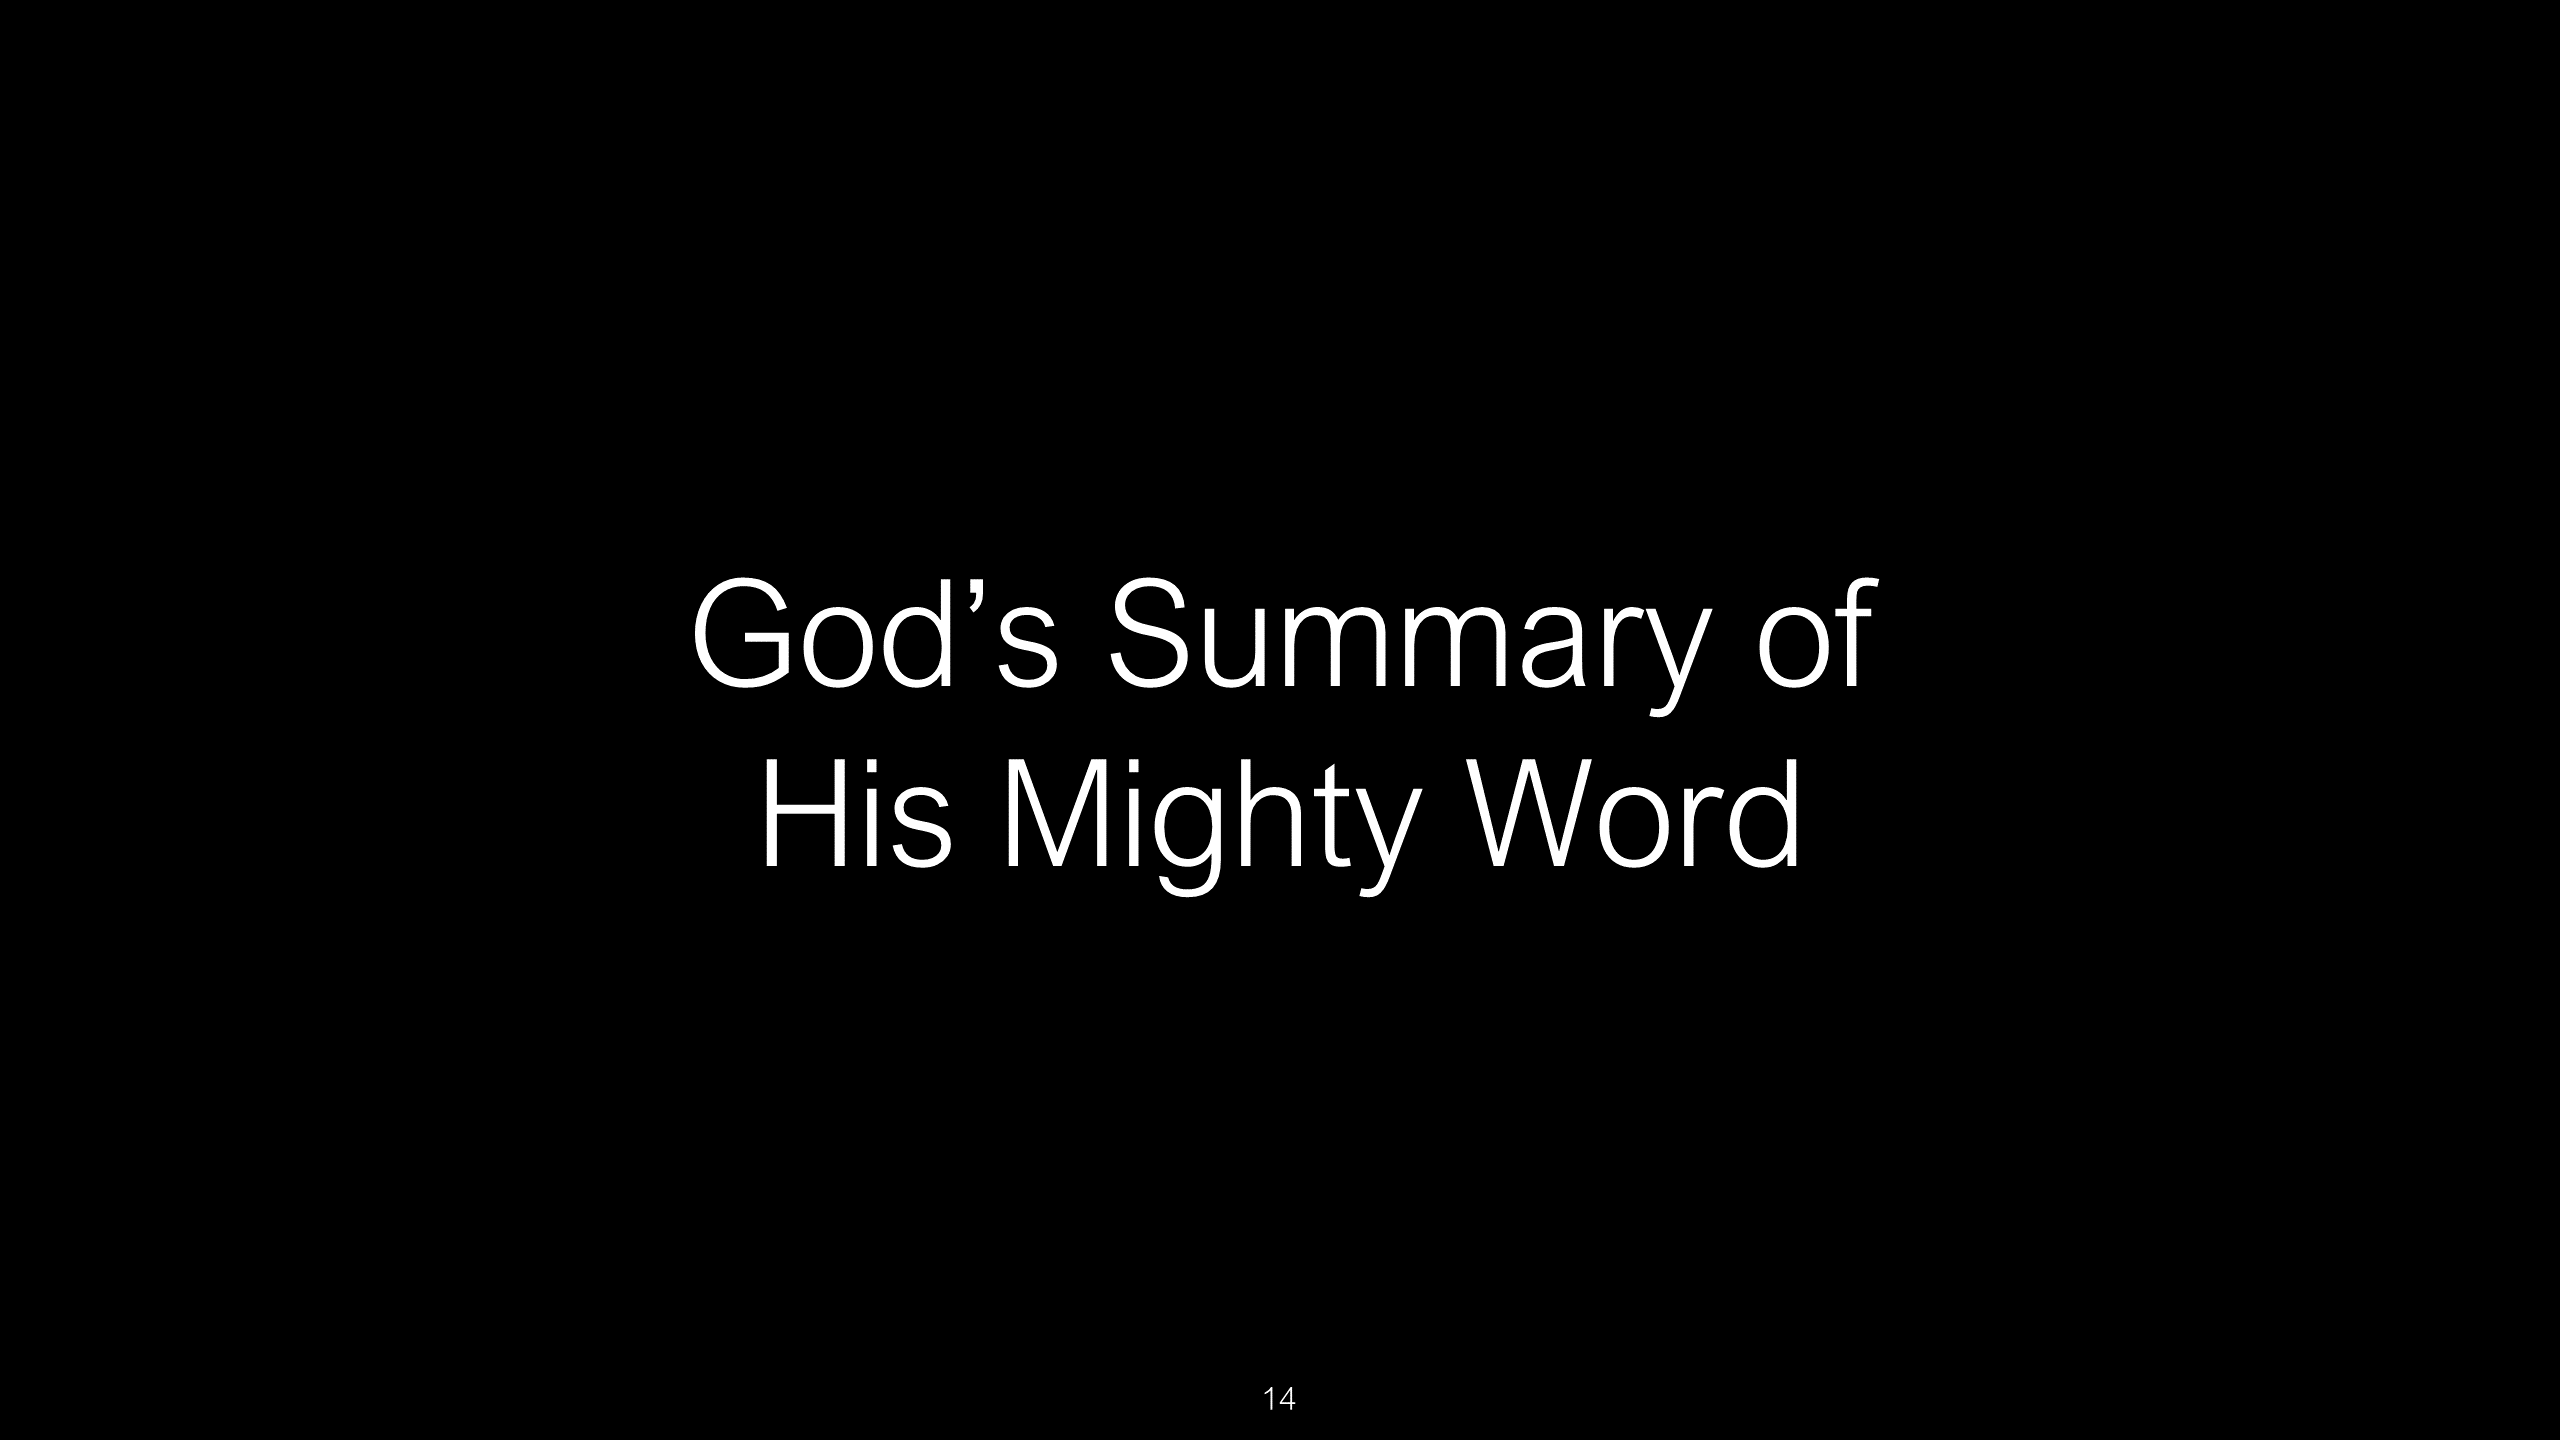 SWS-36 - Psalm 119 - The Bible's Longest Chapter is a Spiritual Diary on How to Use God's Word as the Sword o (14)